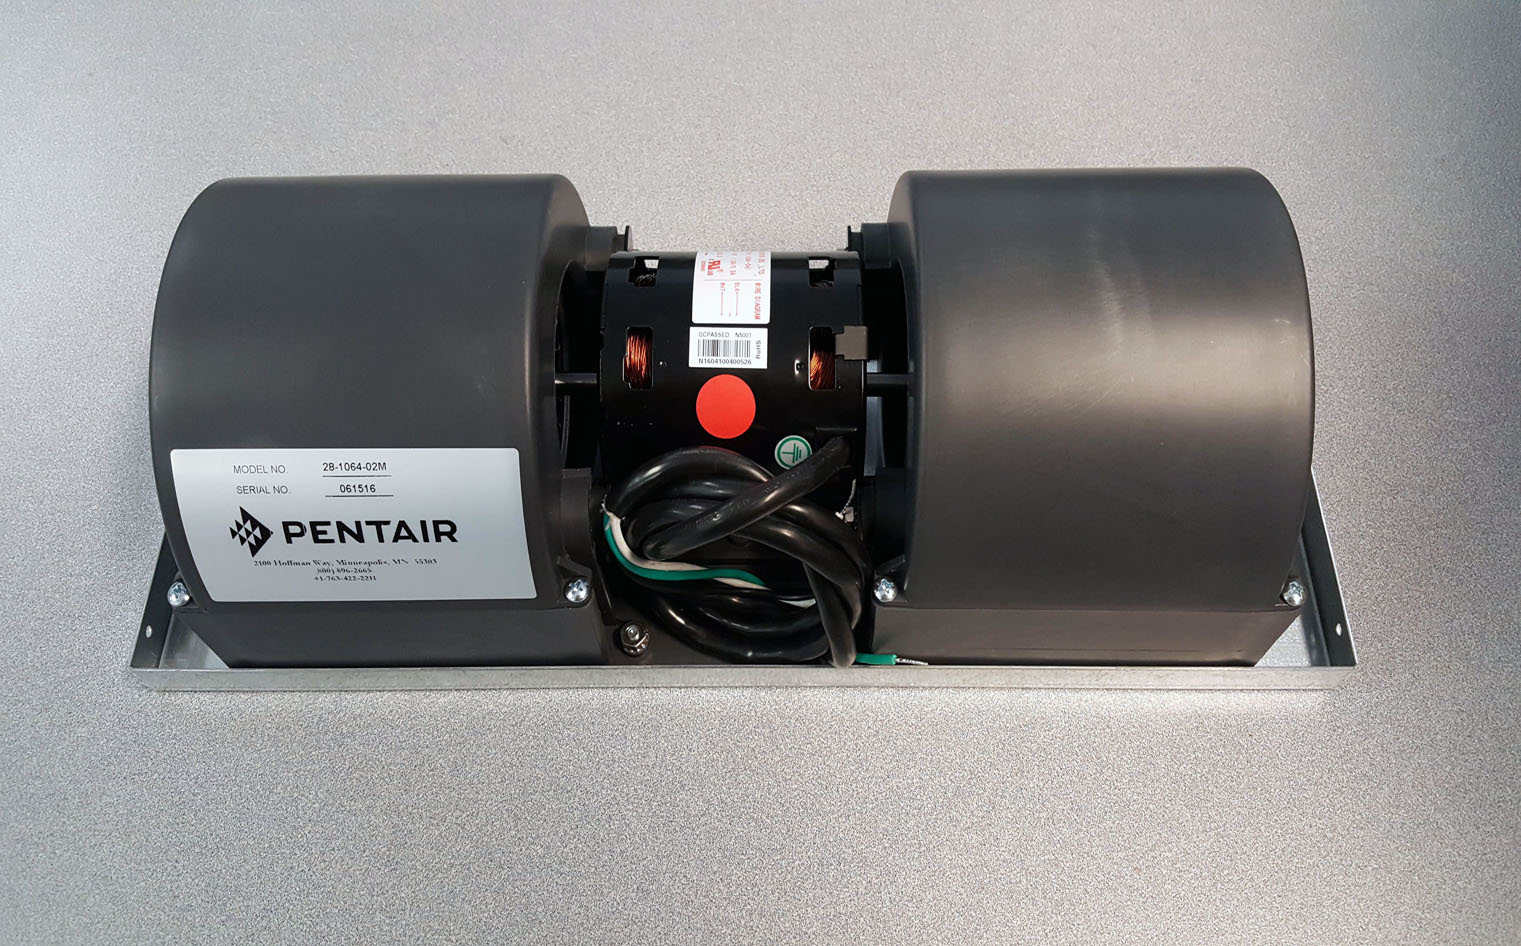 Pentair, Hoffman, McLean 28106402M Blower Assembly, 230 Volt